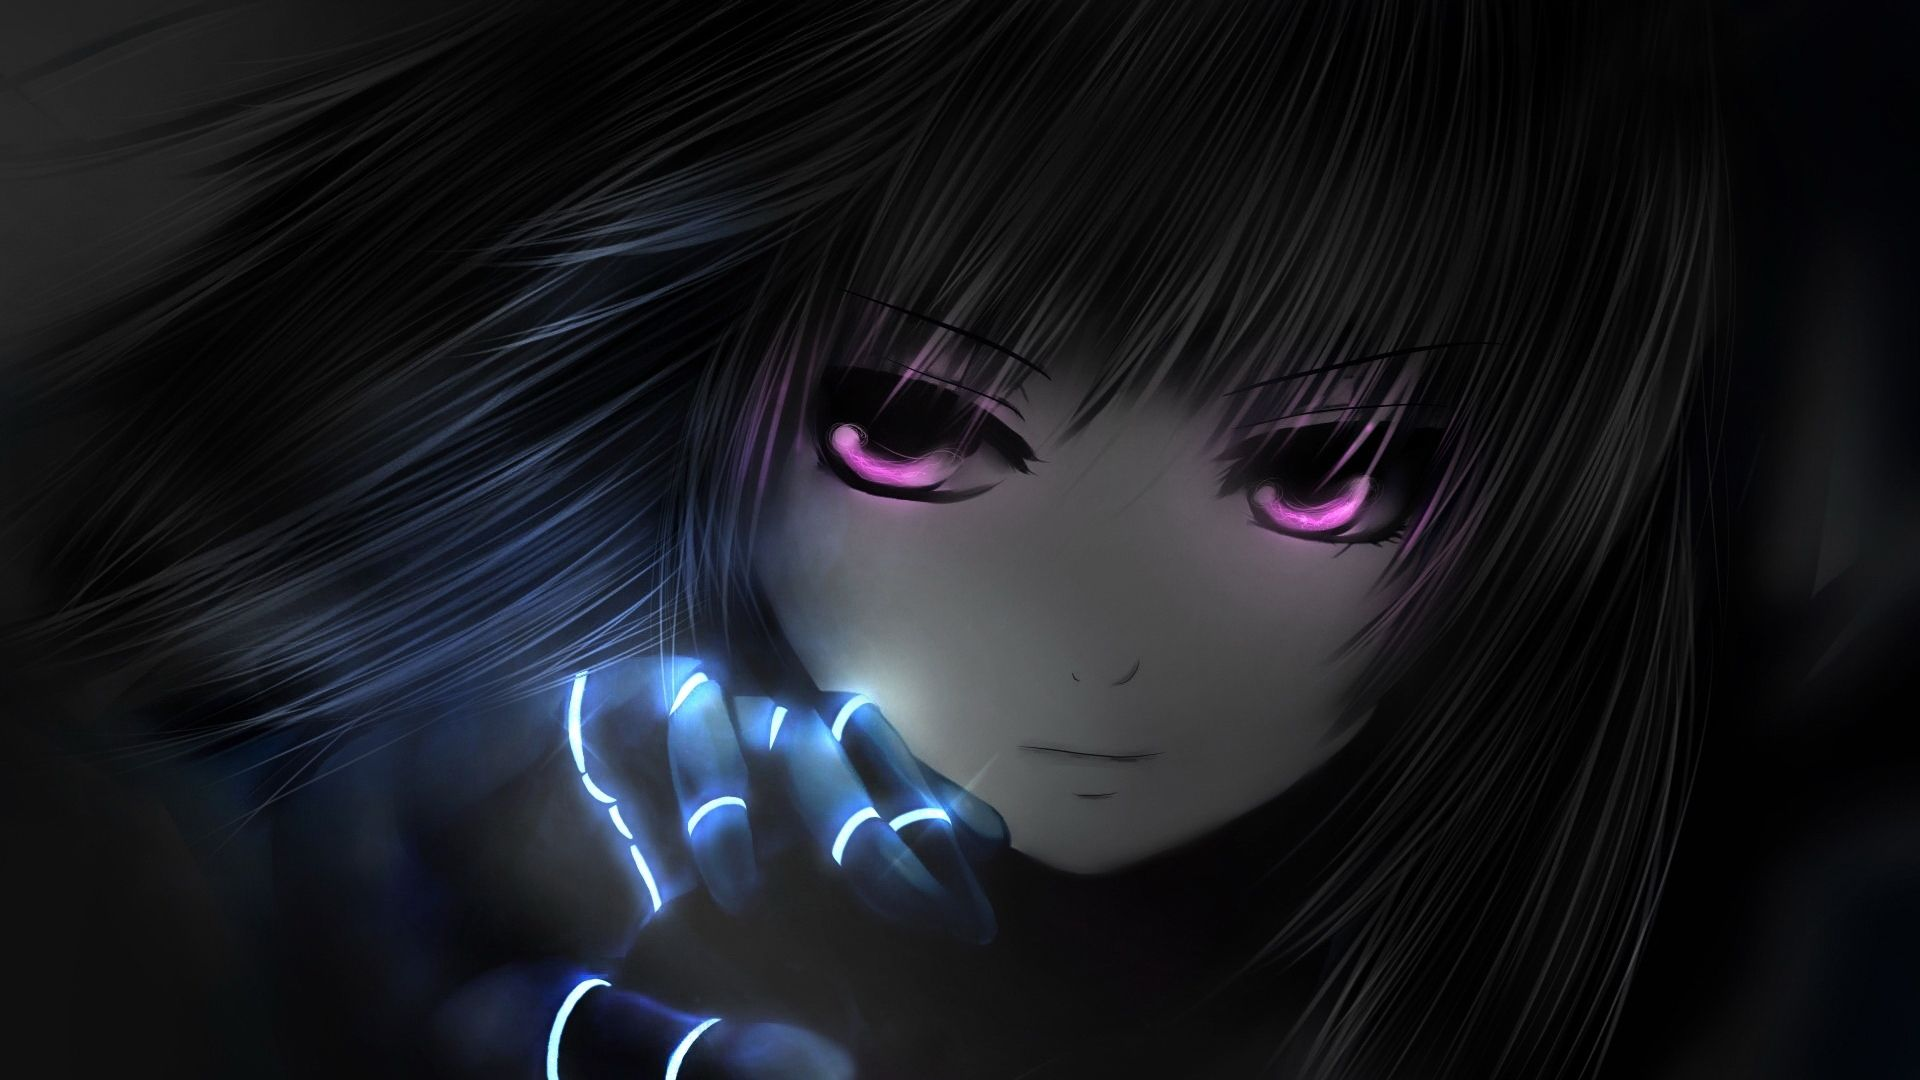 Pin By Nancy On Anime Pics Anime Wallpaper 1920x1080 Dark